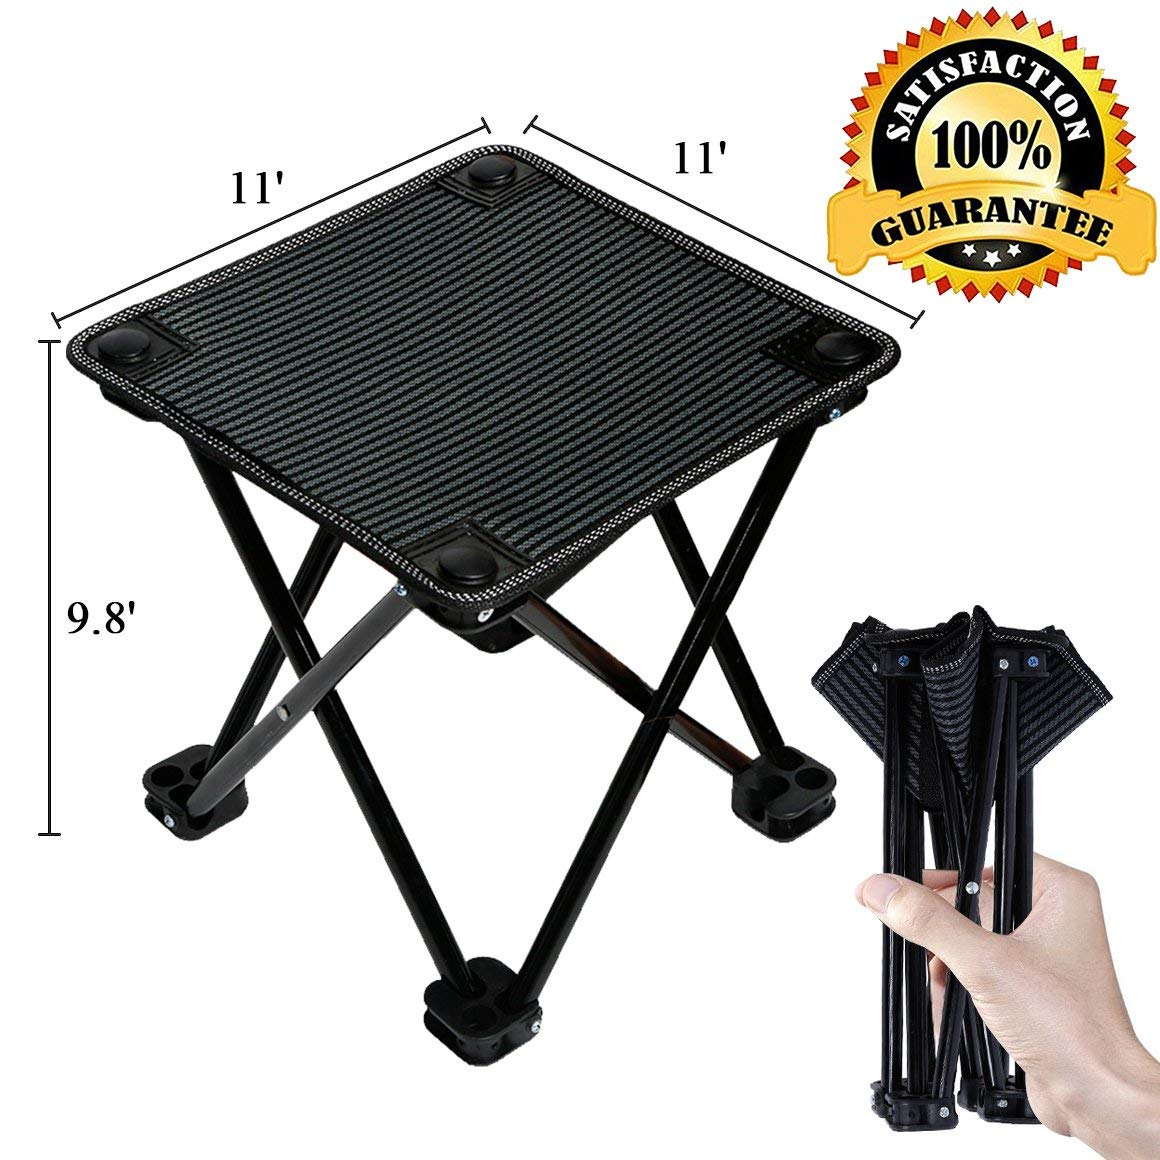 aingycy Folding Portable Camping Chair Mini Lightweight Sturdy Collapsible Chair for Camping, Fishing, Hiking, Fishing, Travel, Beach, Picnic with Portable Bag, Black